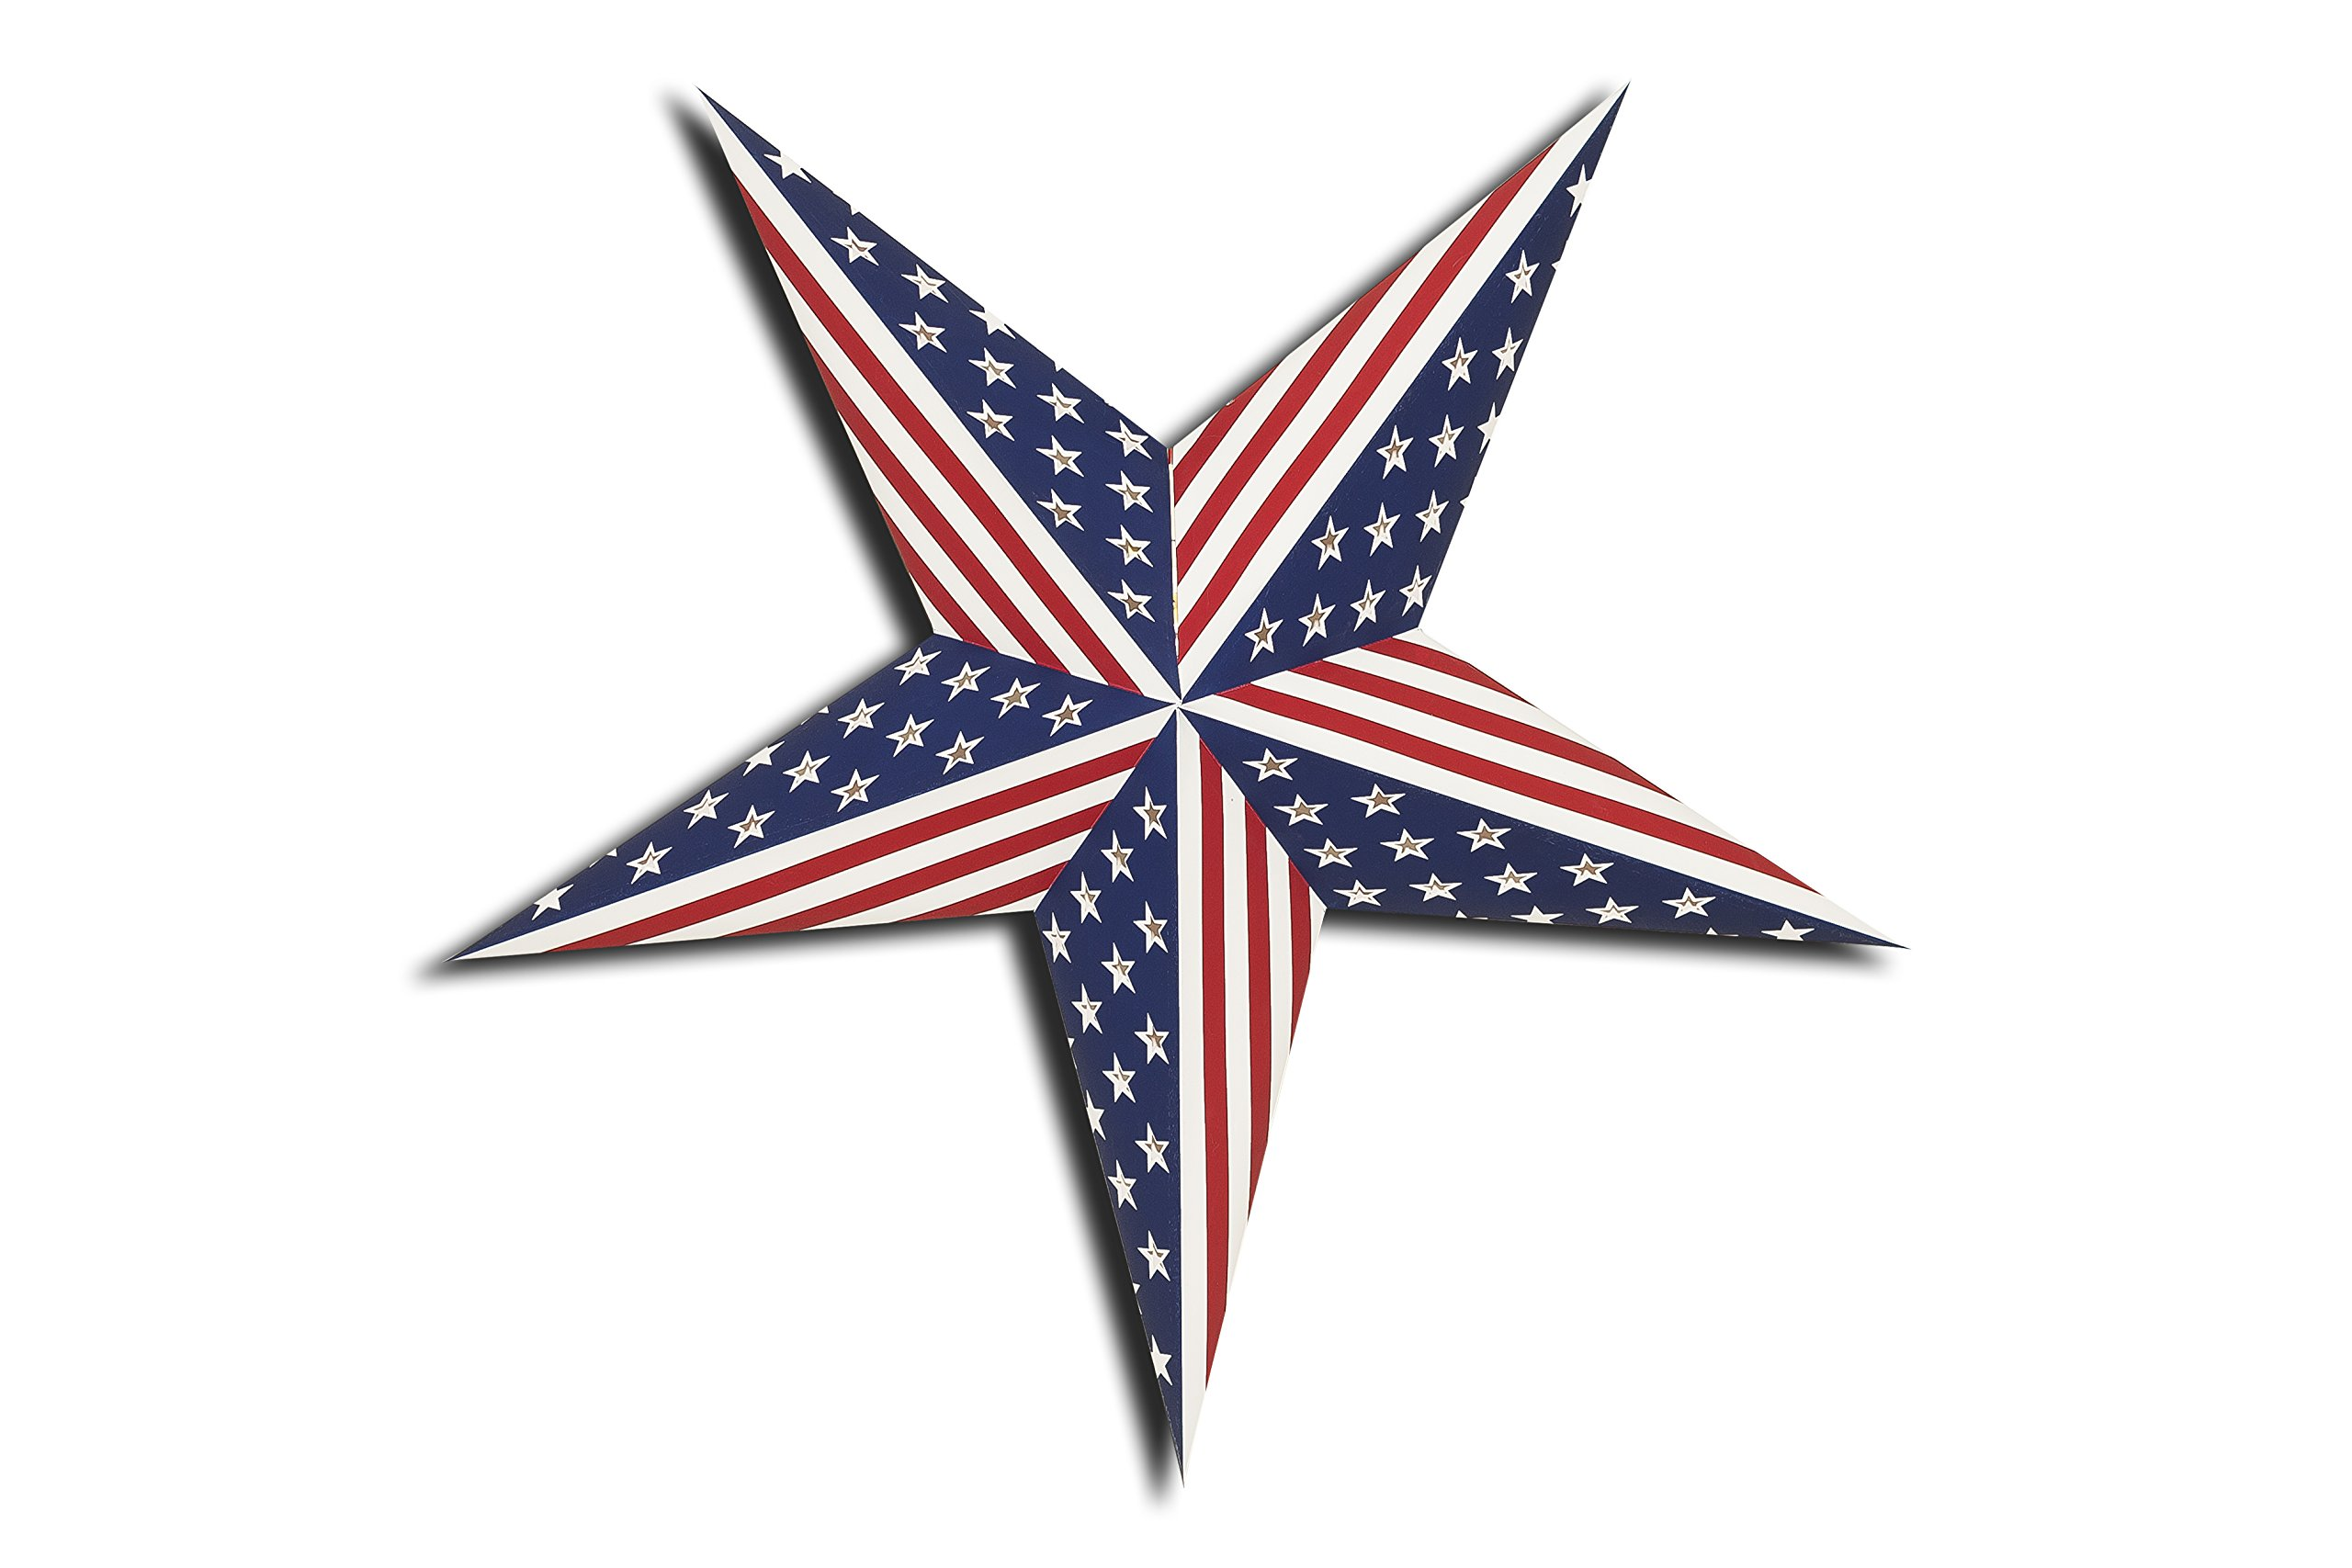 GalaxyArts USA Flag - Paper Star Lantern - United States of America Patriotism 4th July Independence Day Memorial Day Presidents Day Party Decoration - Handmade (1)